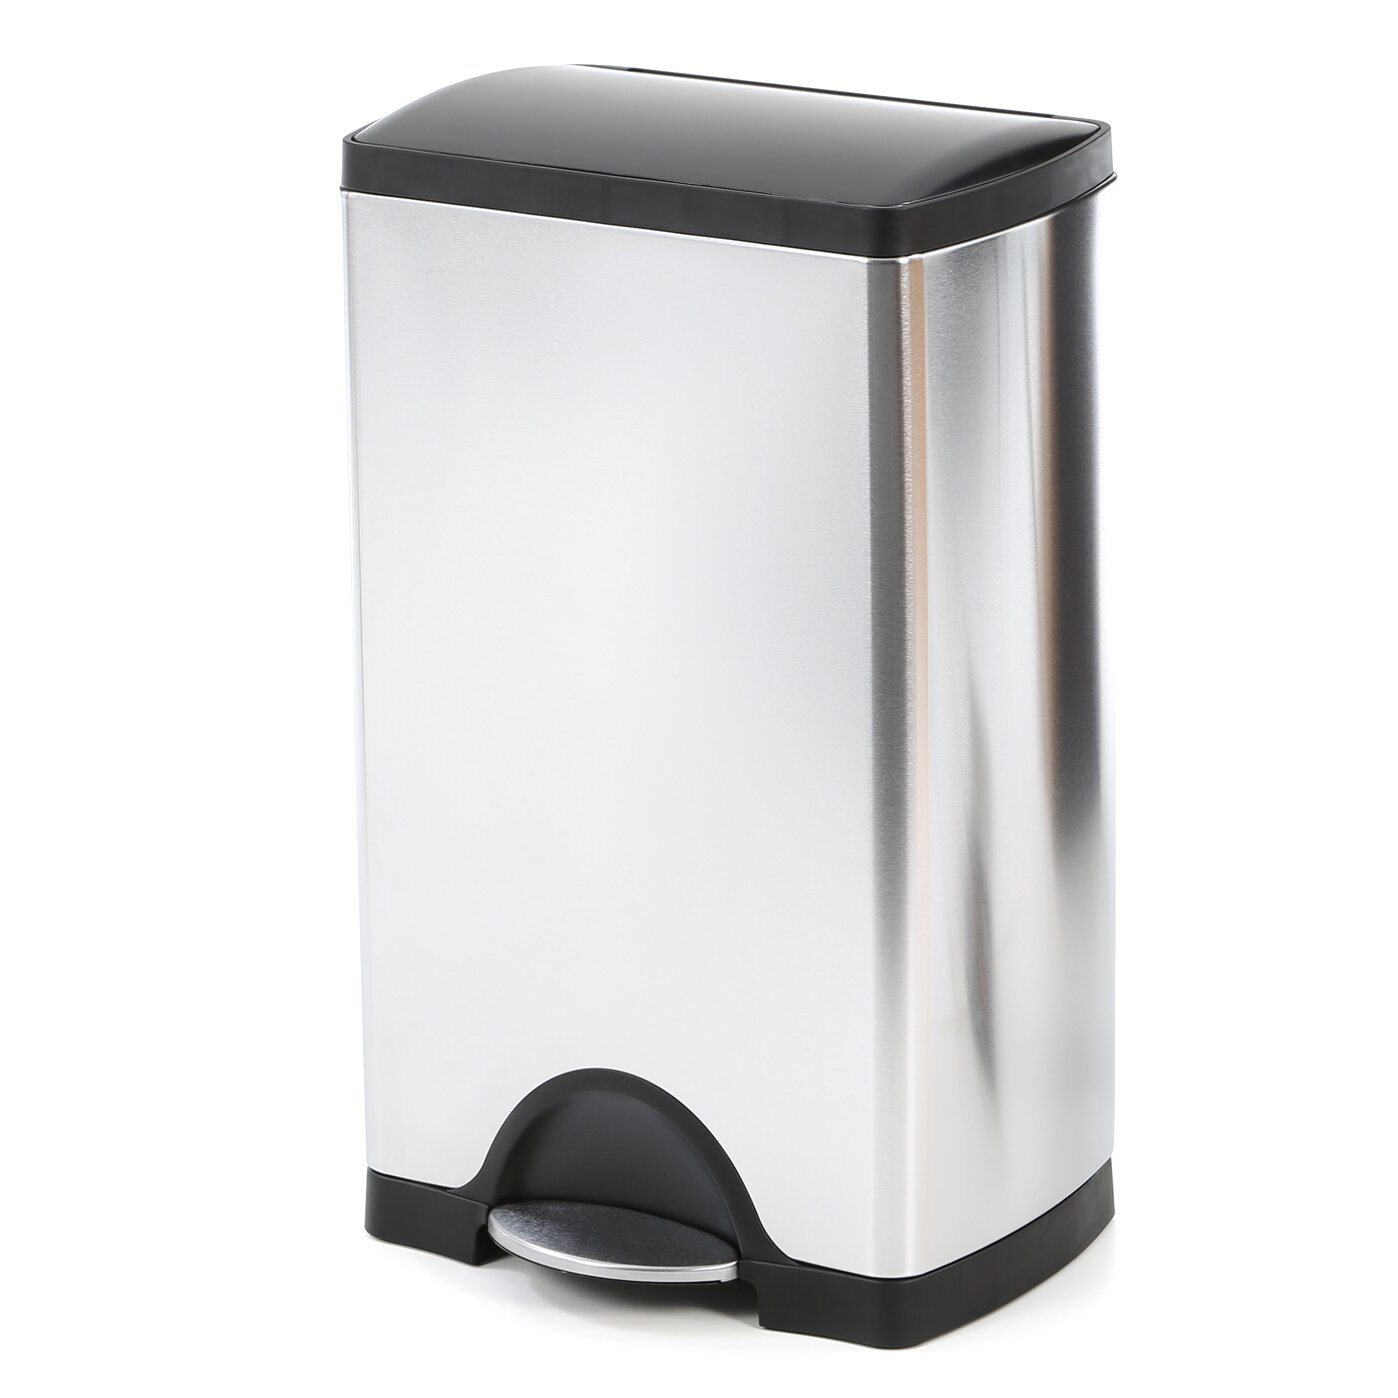 simplehuman 10 Gallon Step On Stainless Steel Trash Can. simplehuman 10 Gallon Step On Stainless Steel Trash Can   Reviews